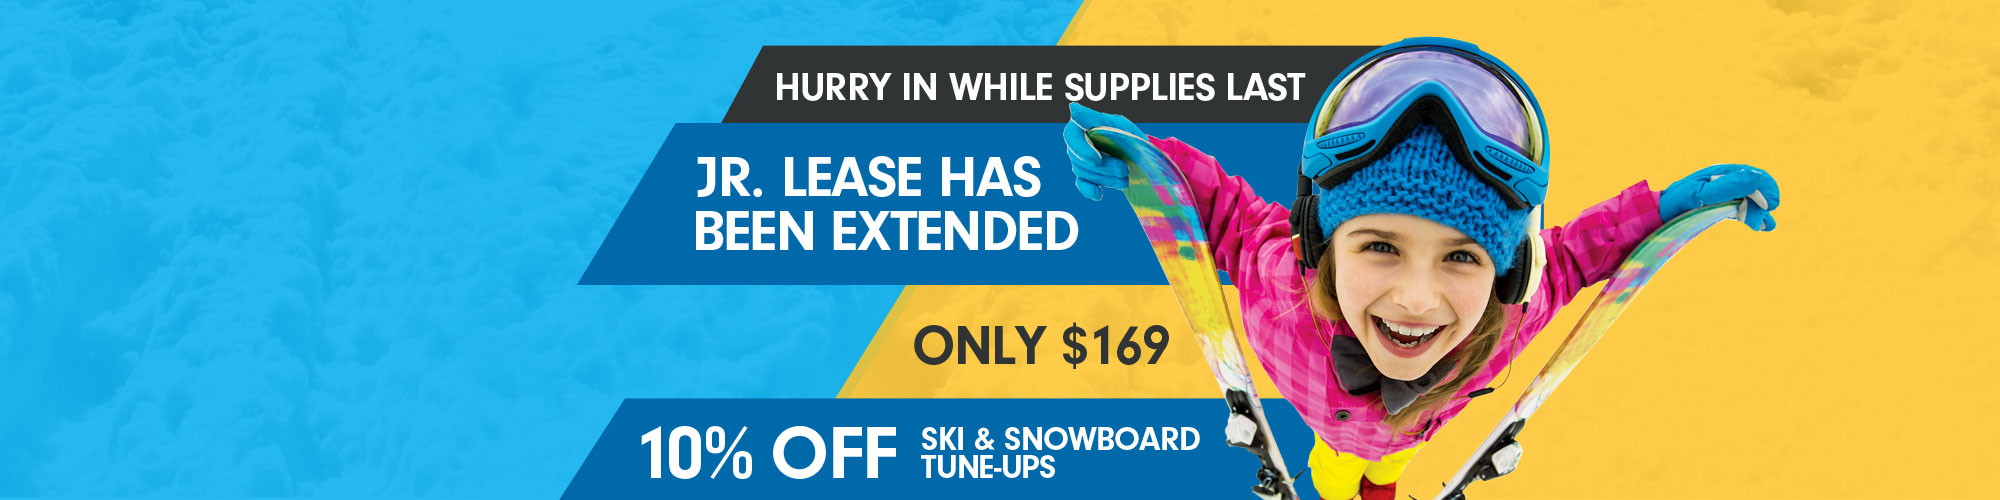 Our Jr. Lease has been extended. Only $169